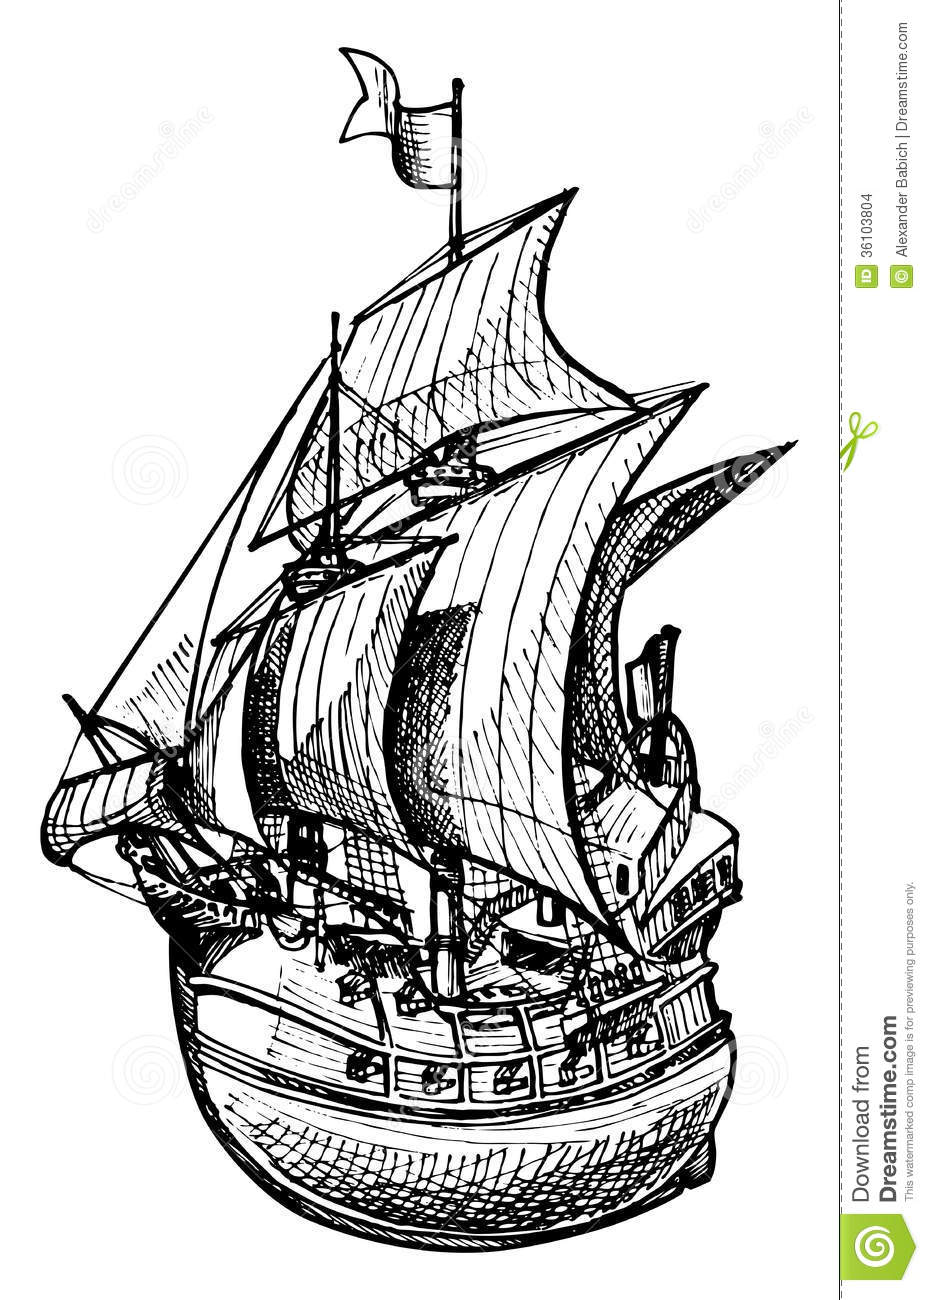 Galleon Stock Images - Image: 36103804